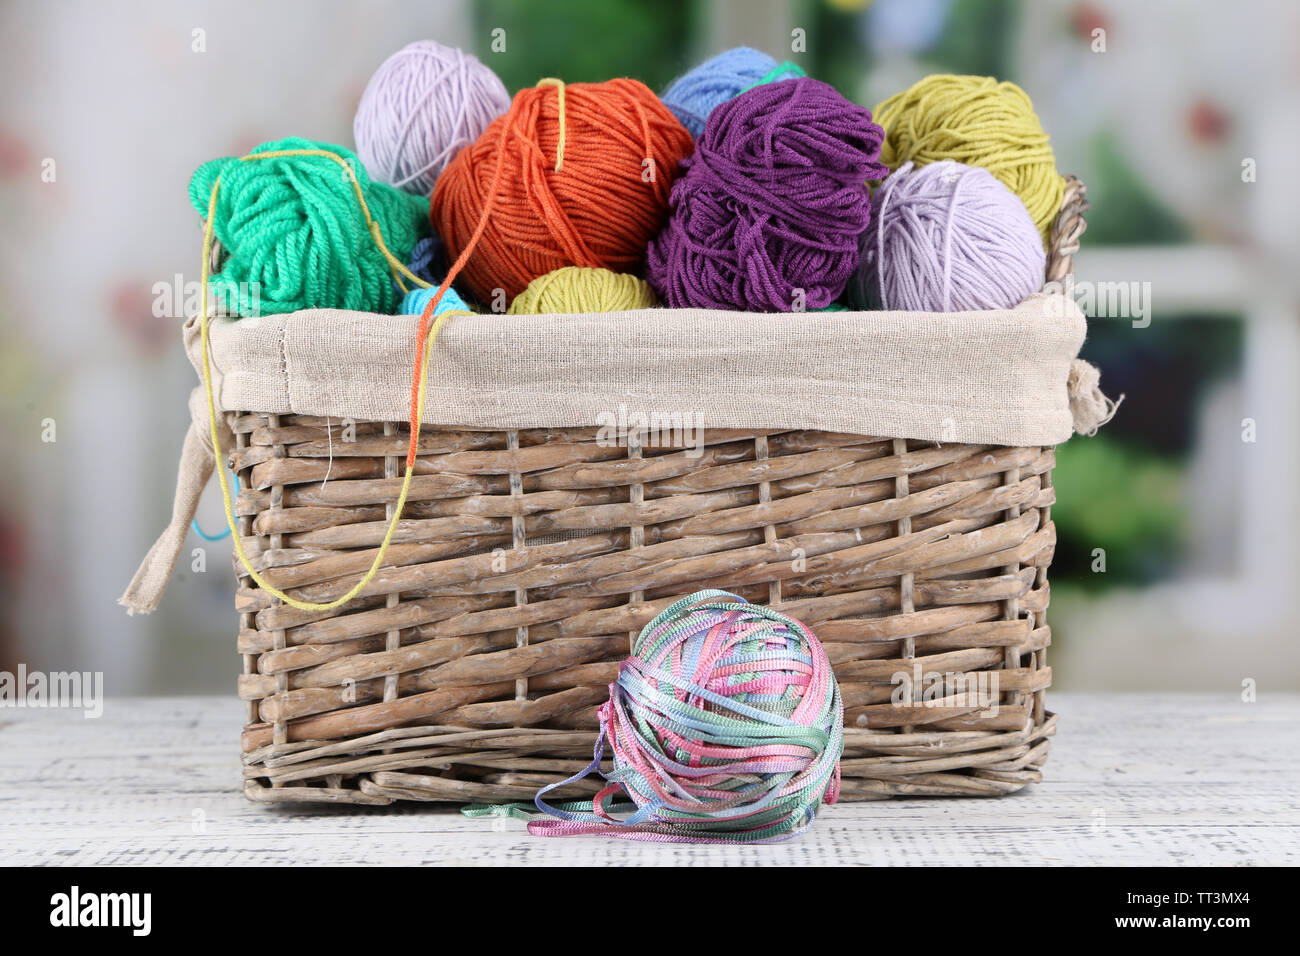 Multicoloured knitting yarn on a wooden table on window background - Stock Image